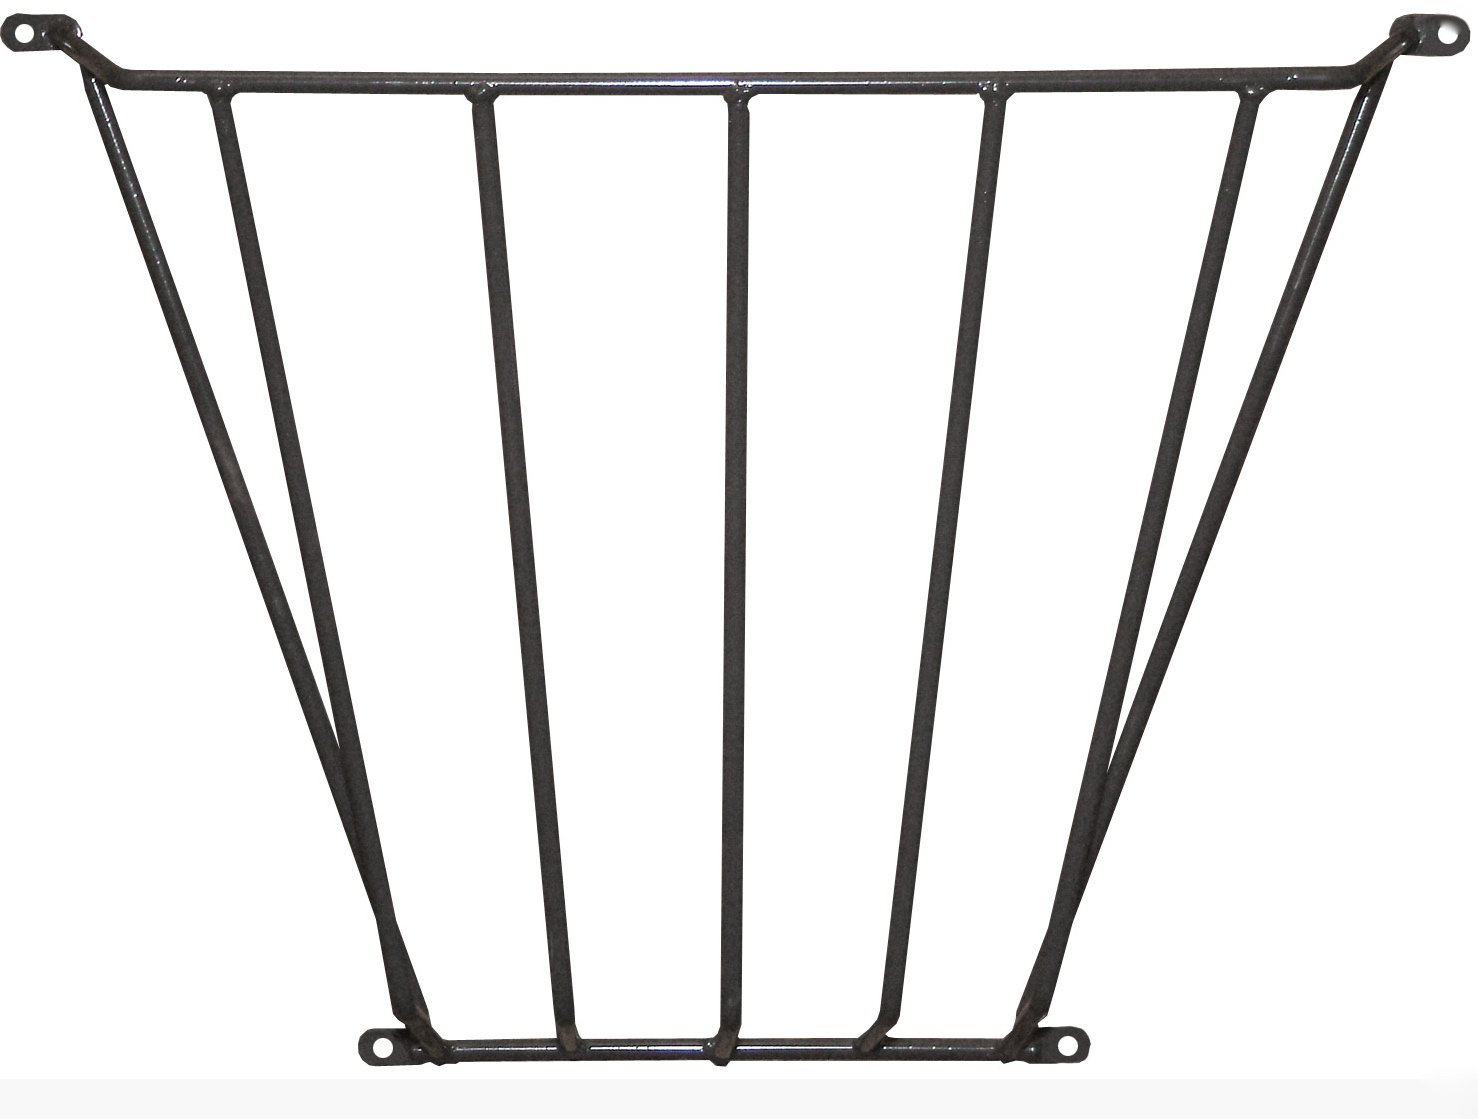 Behlen Country 76110867 Wall Hay Rack for Horse